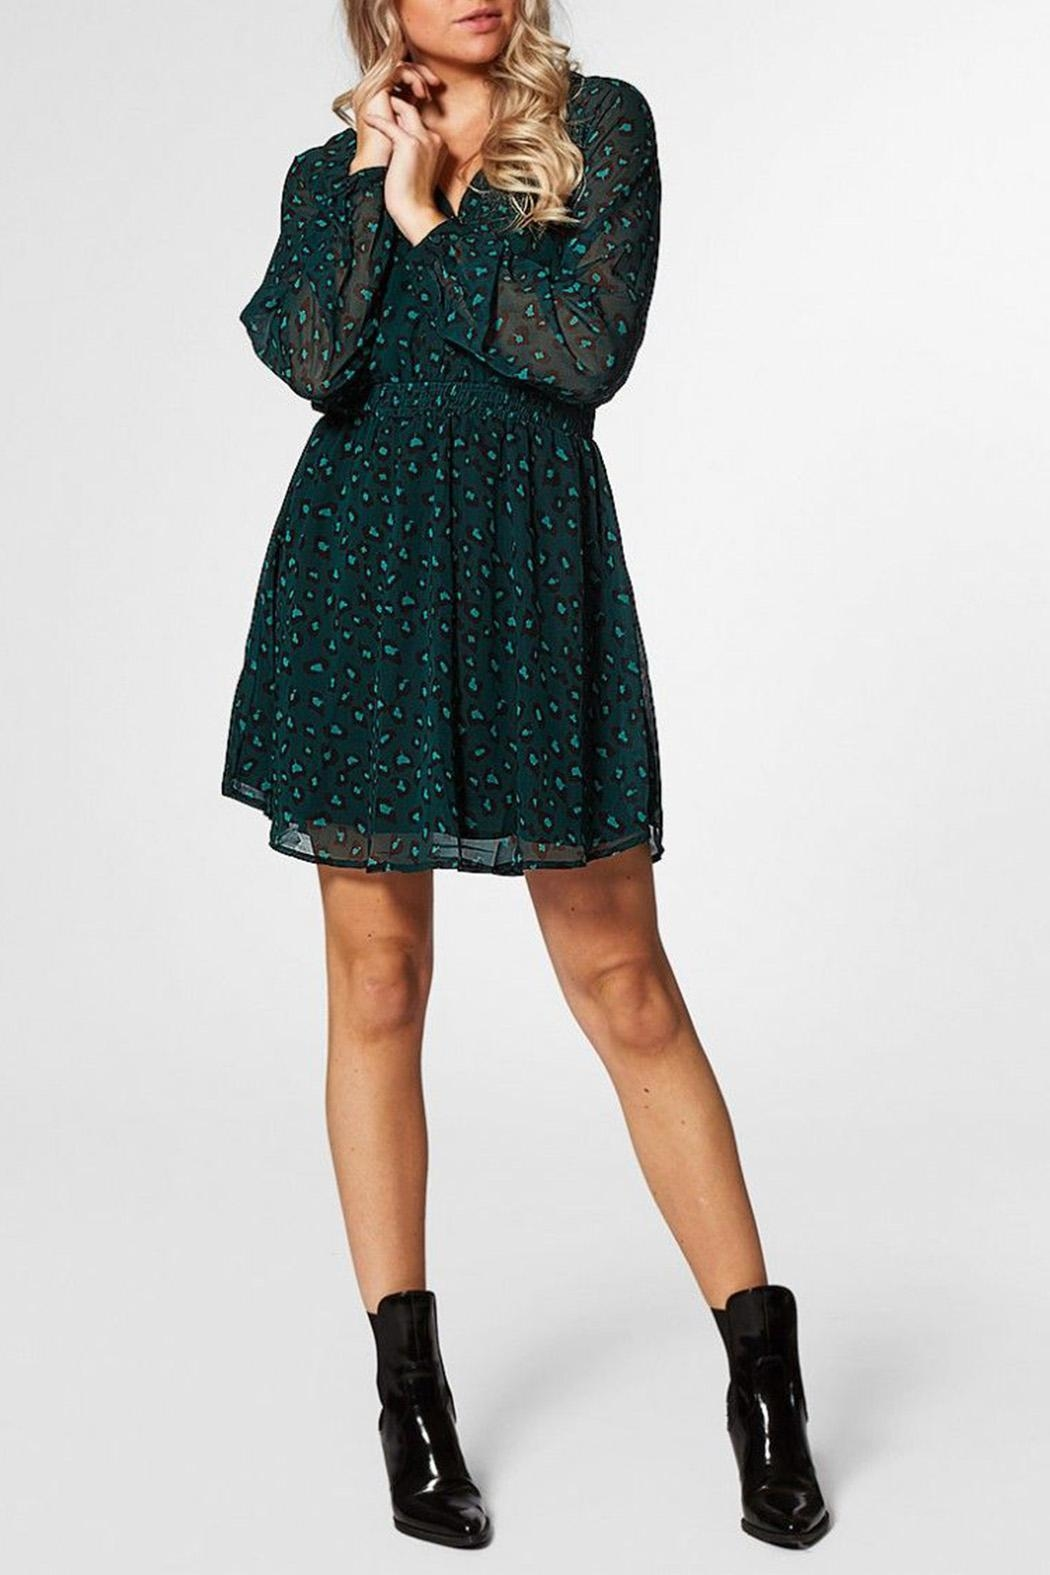 Circle Of Trust Kira Green Dress - Main Image